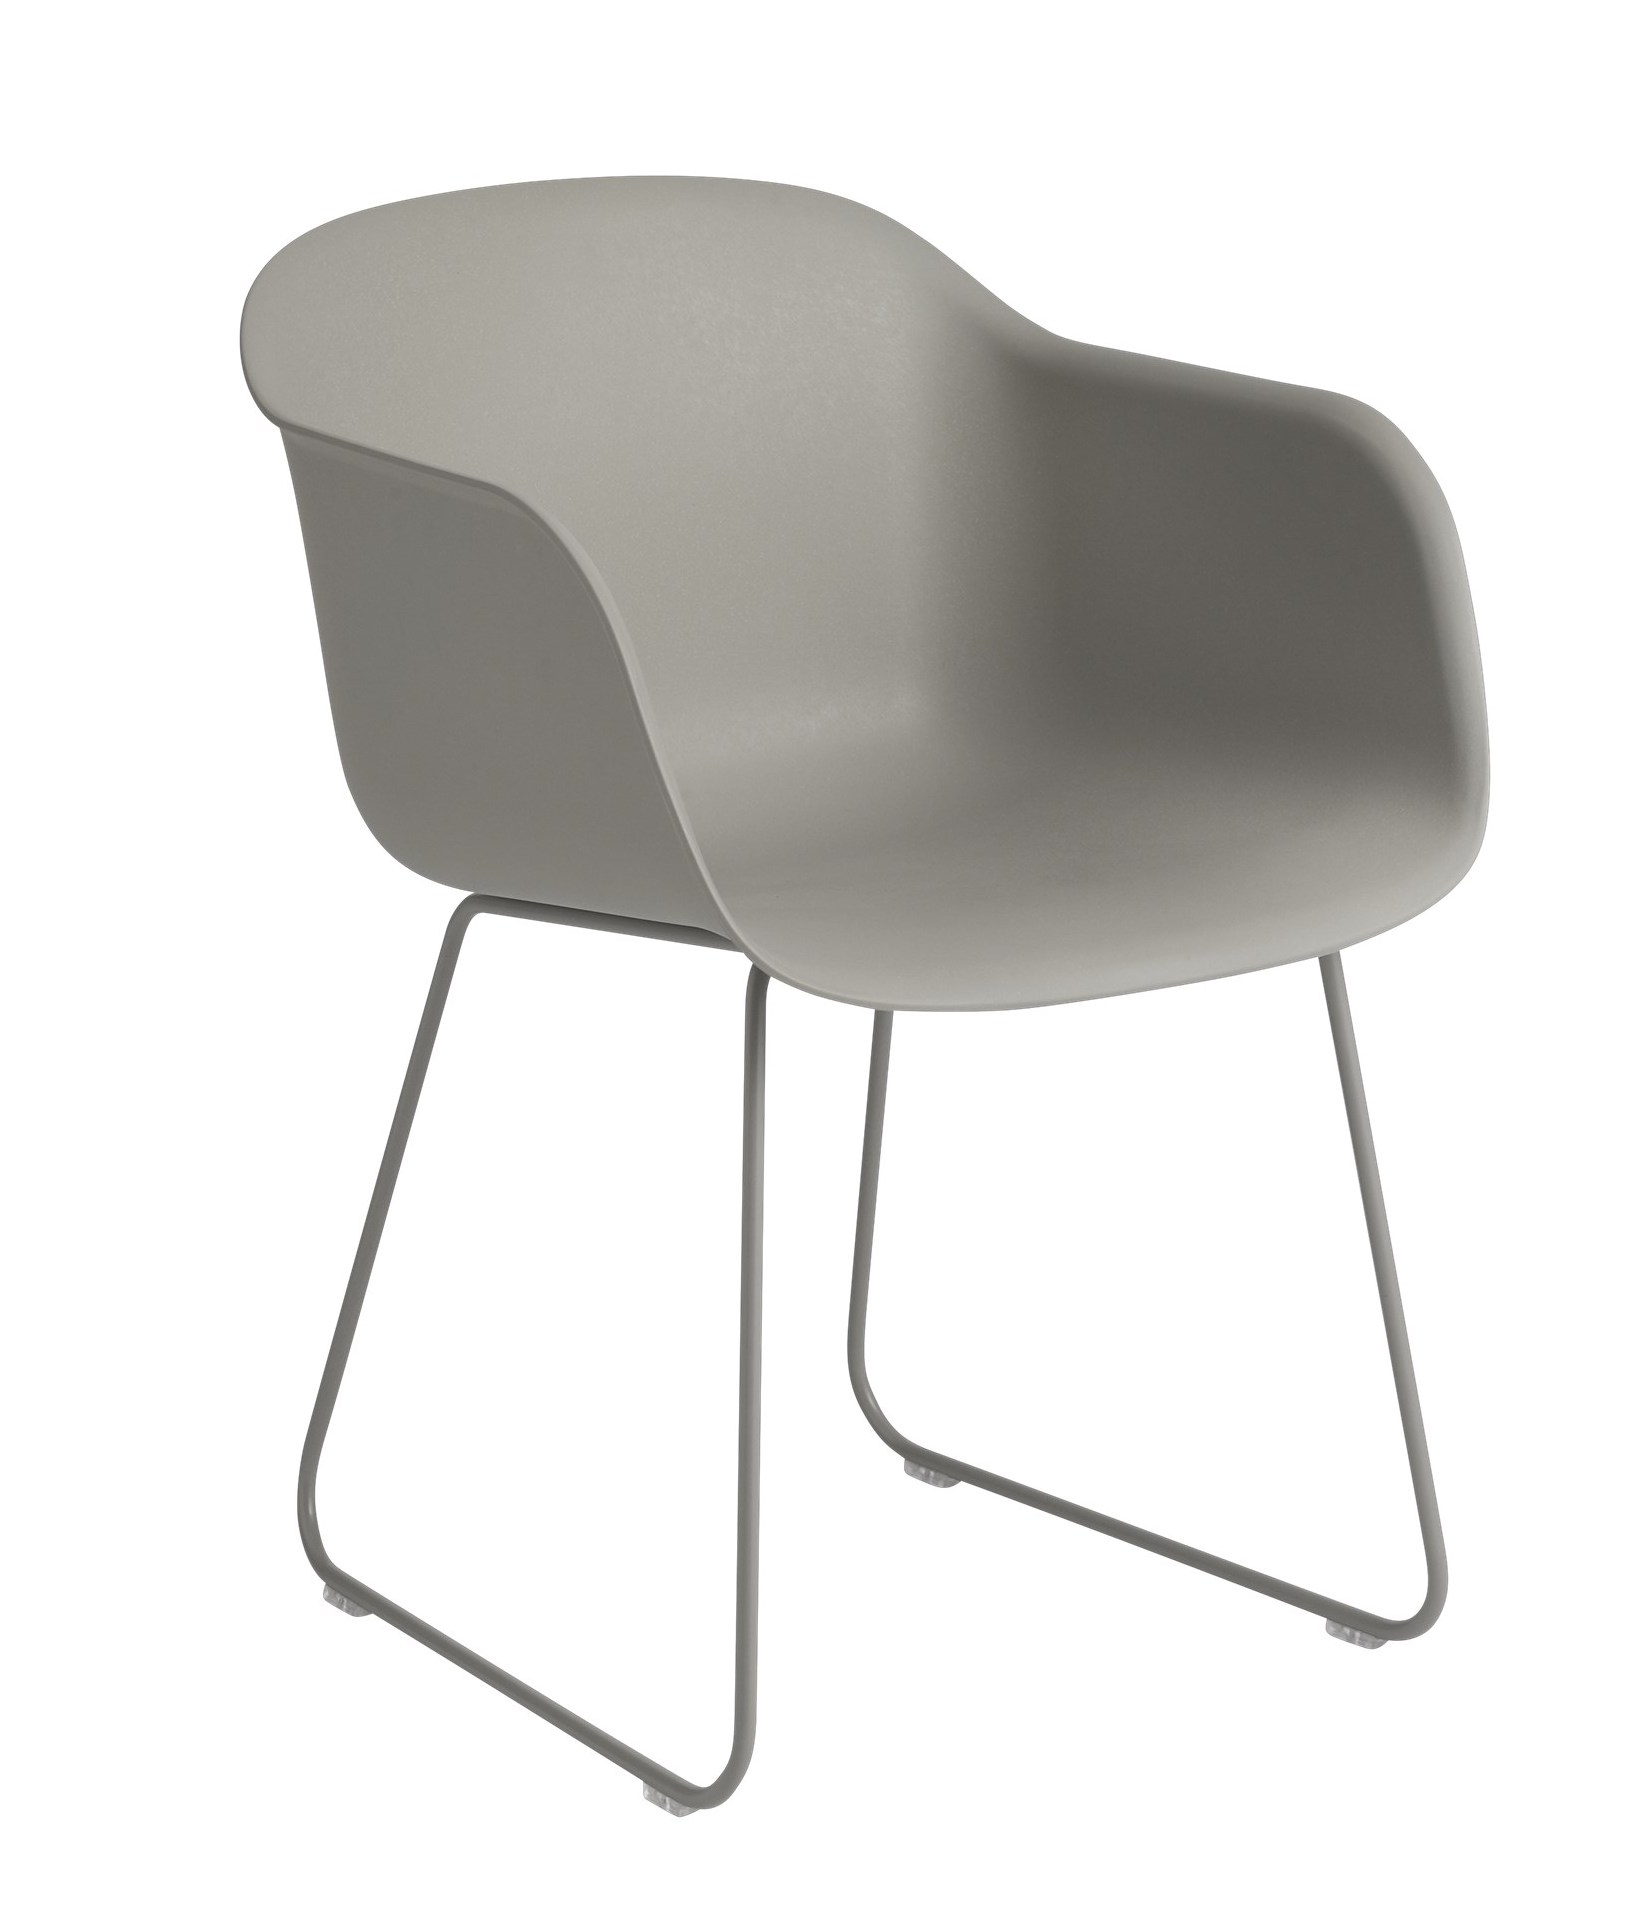 muuto Fiber Armchair Sled Base grey